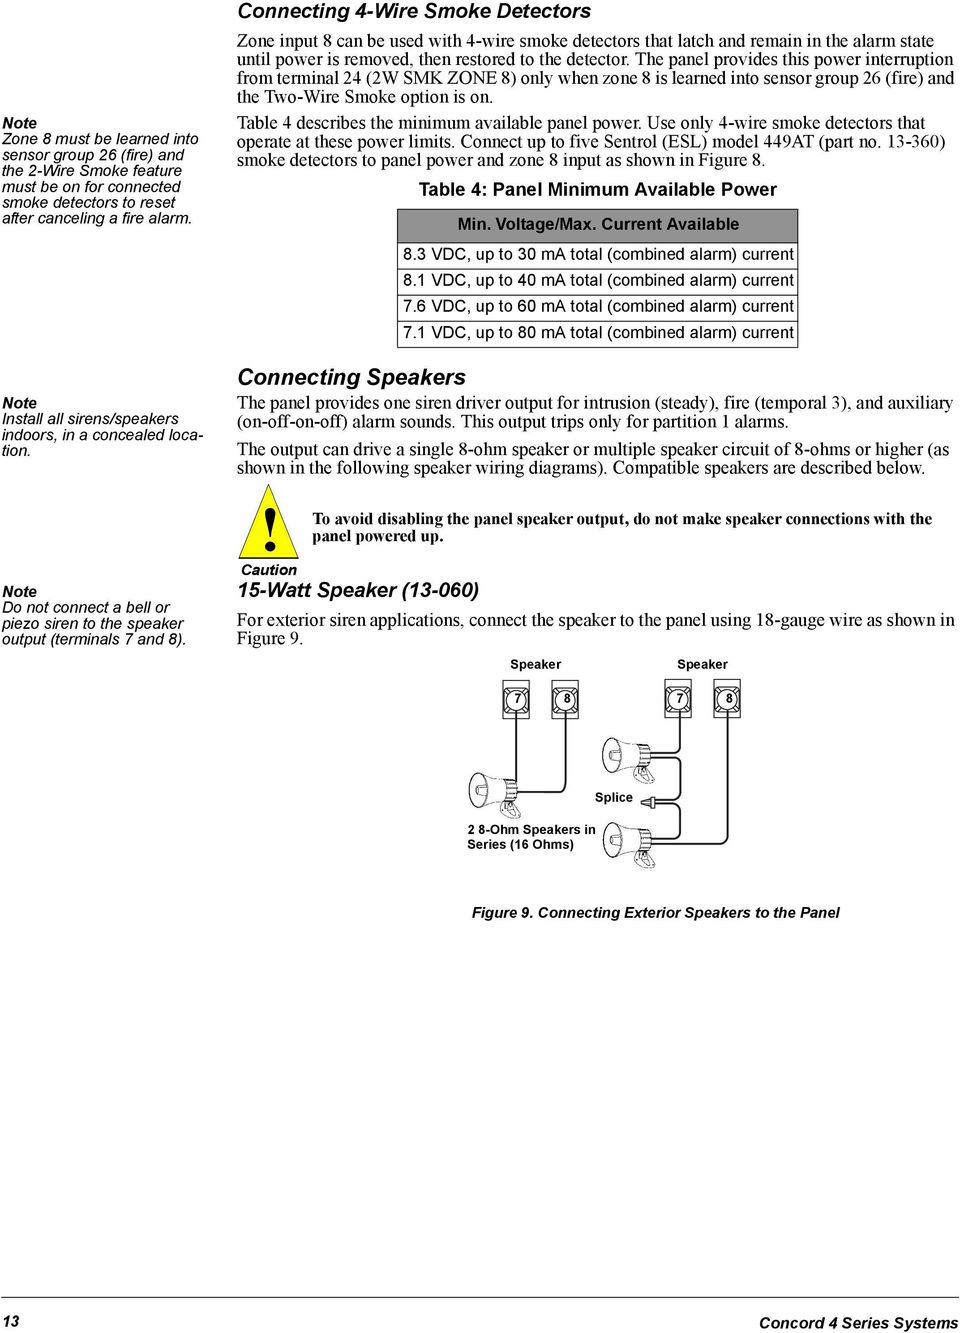 concord 4 series security systems pdf connecting 4 wire smoke detectors zone input 8 can be used 4 wire